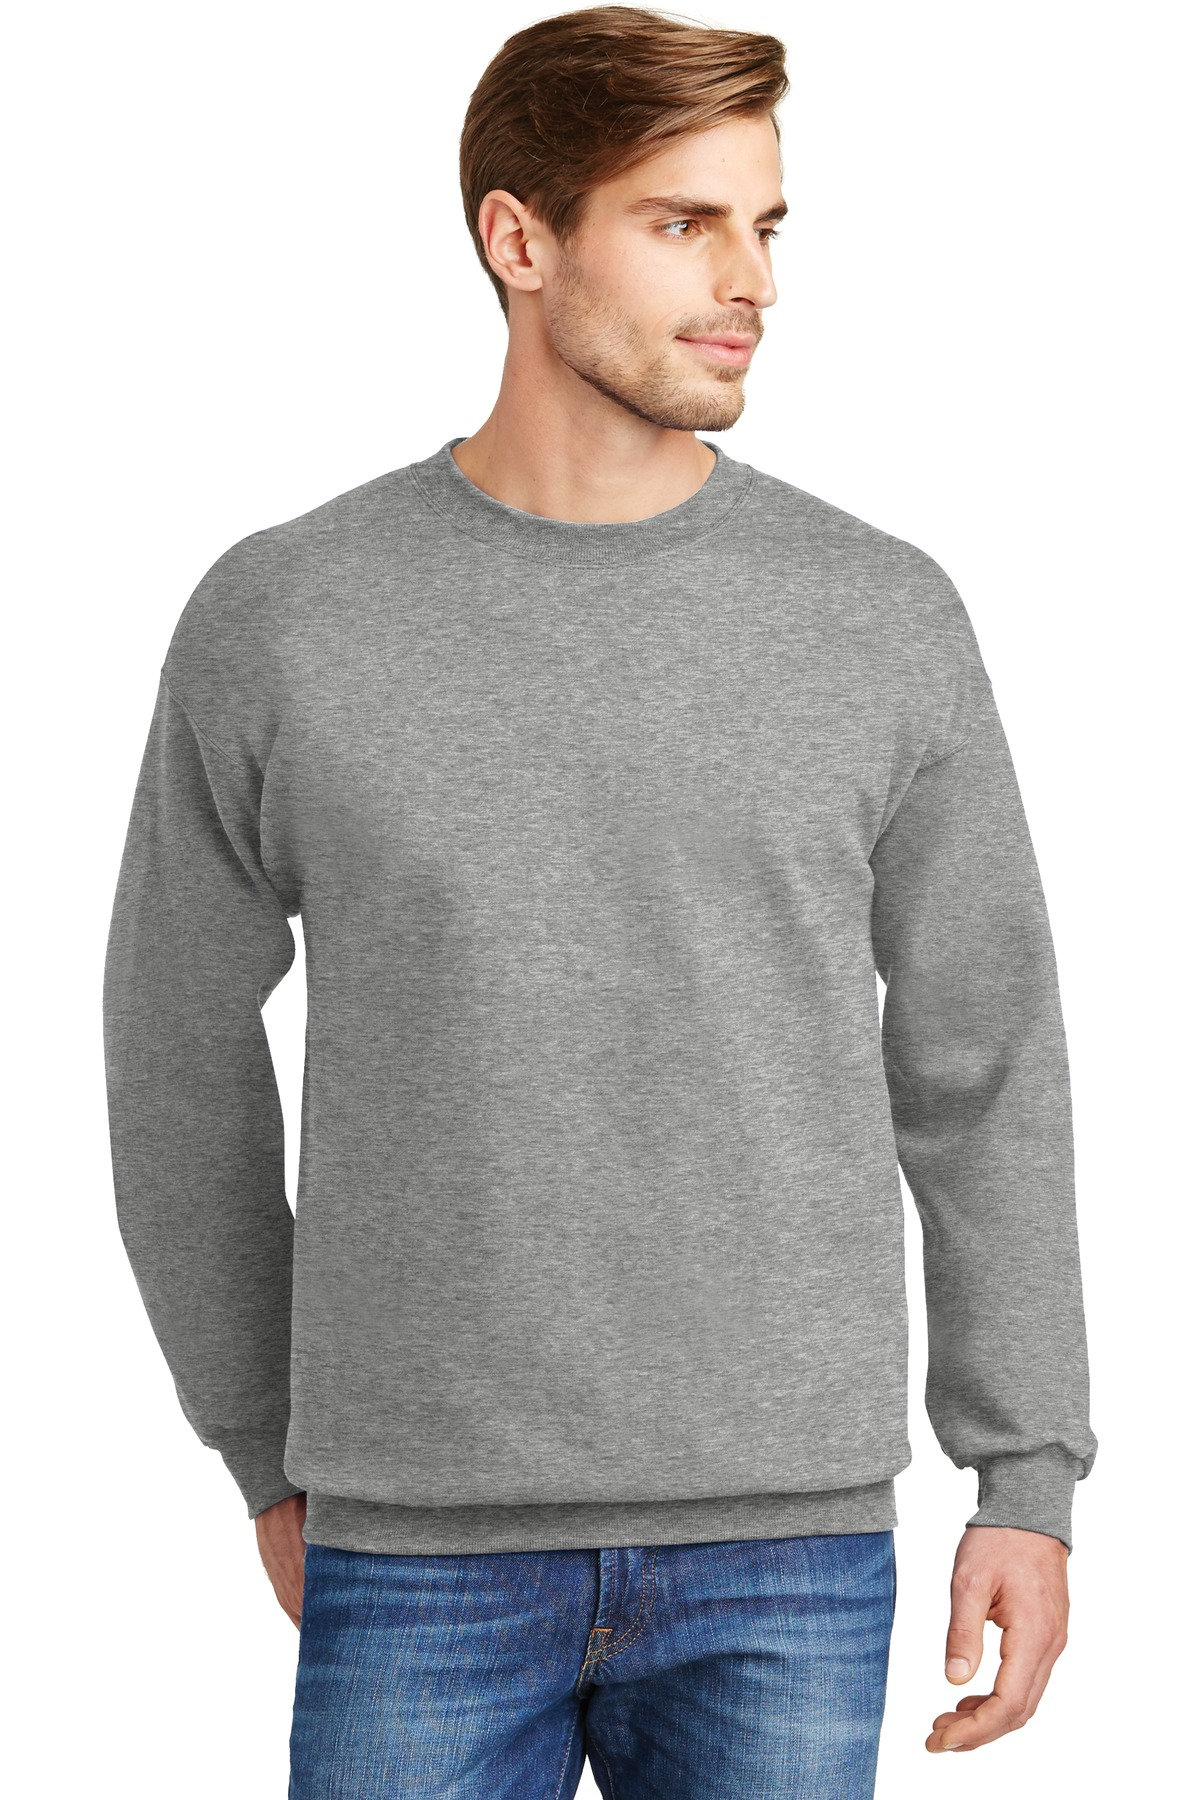 Hanes ®  Ultimate Cotton ®  - Crewneck Sweatshirt.  F260 - Light Steel*